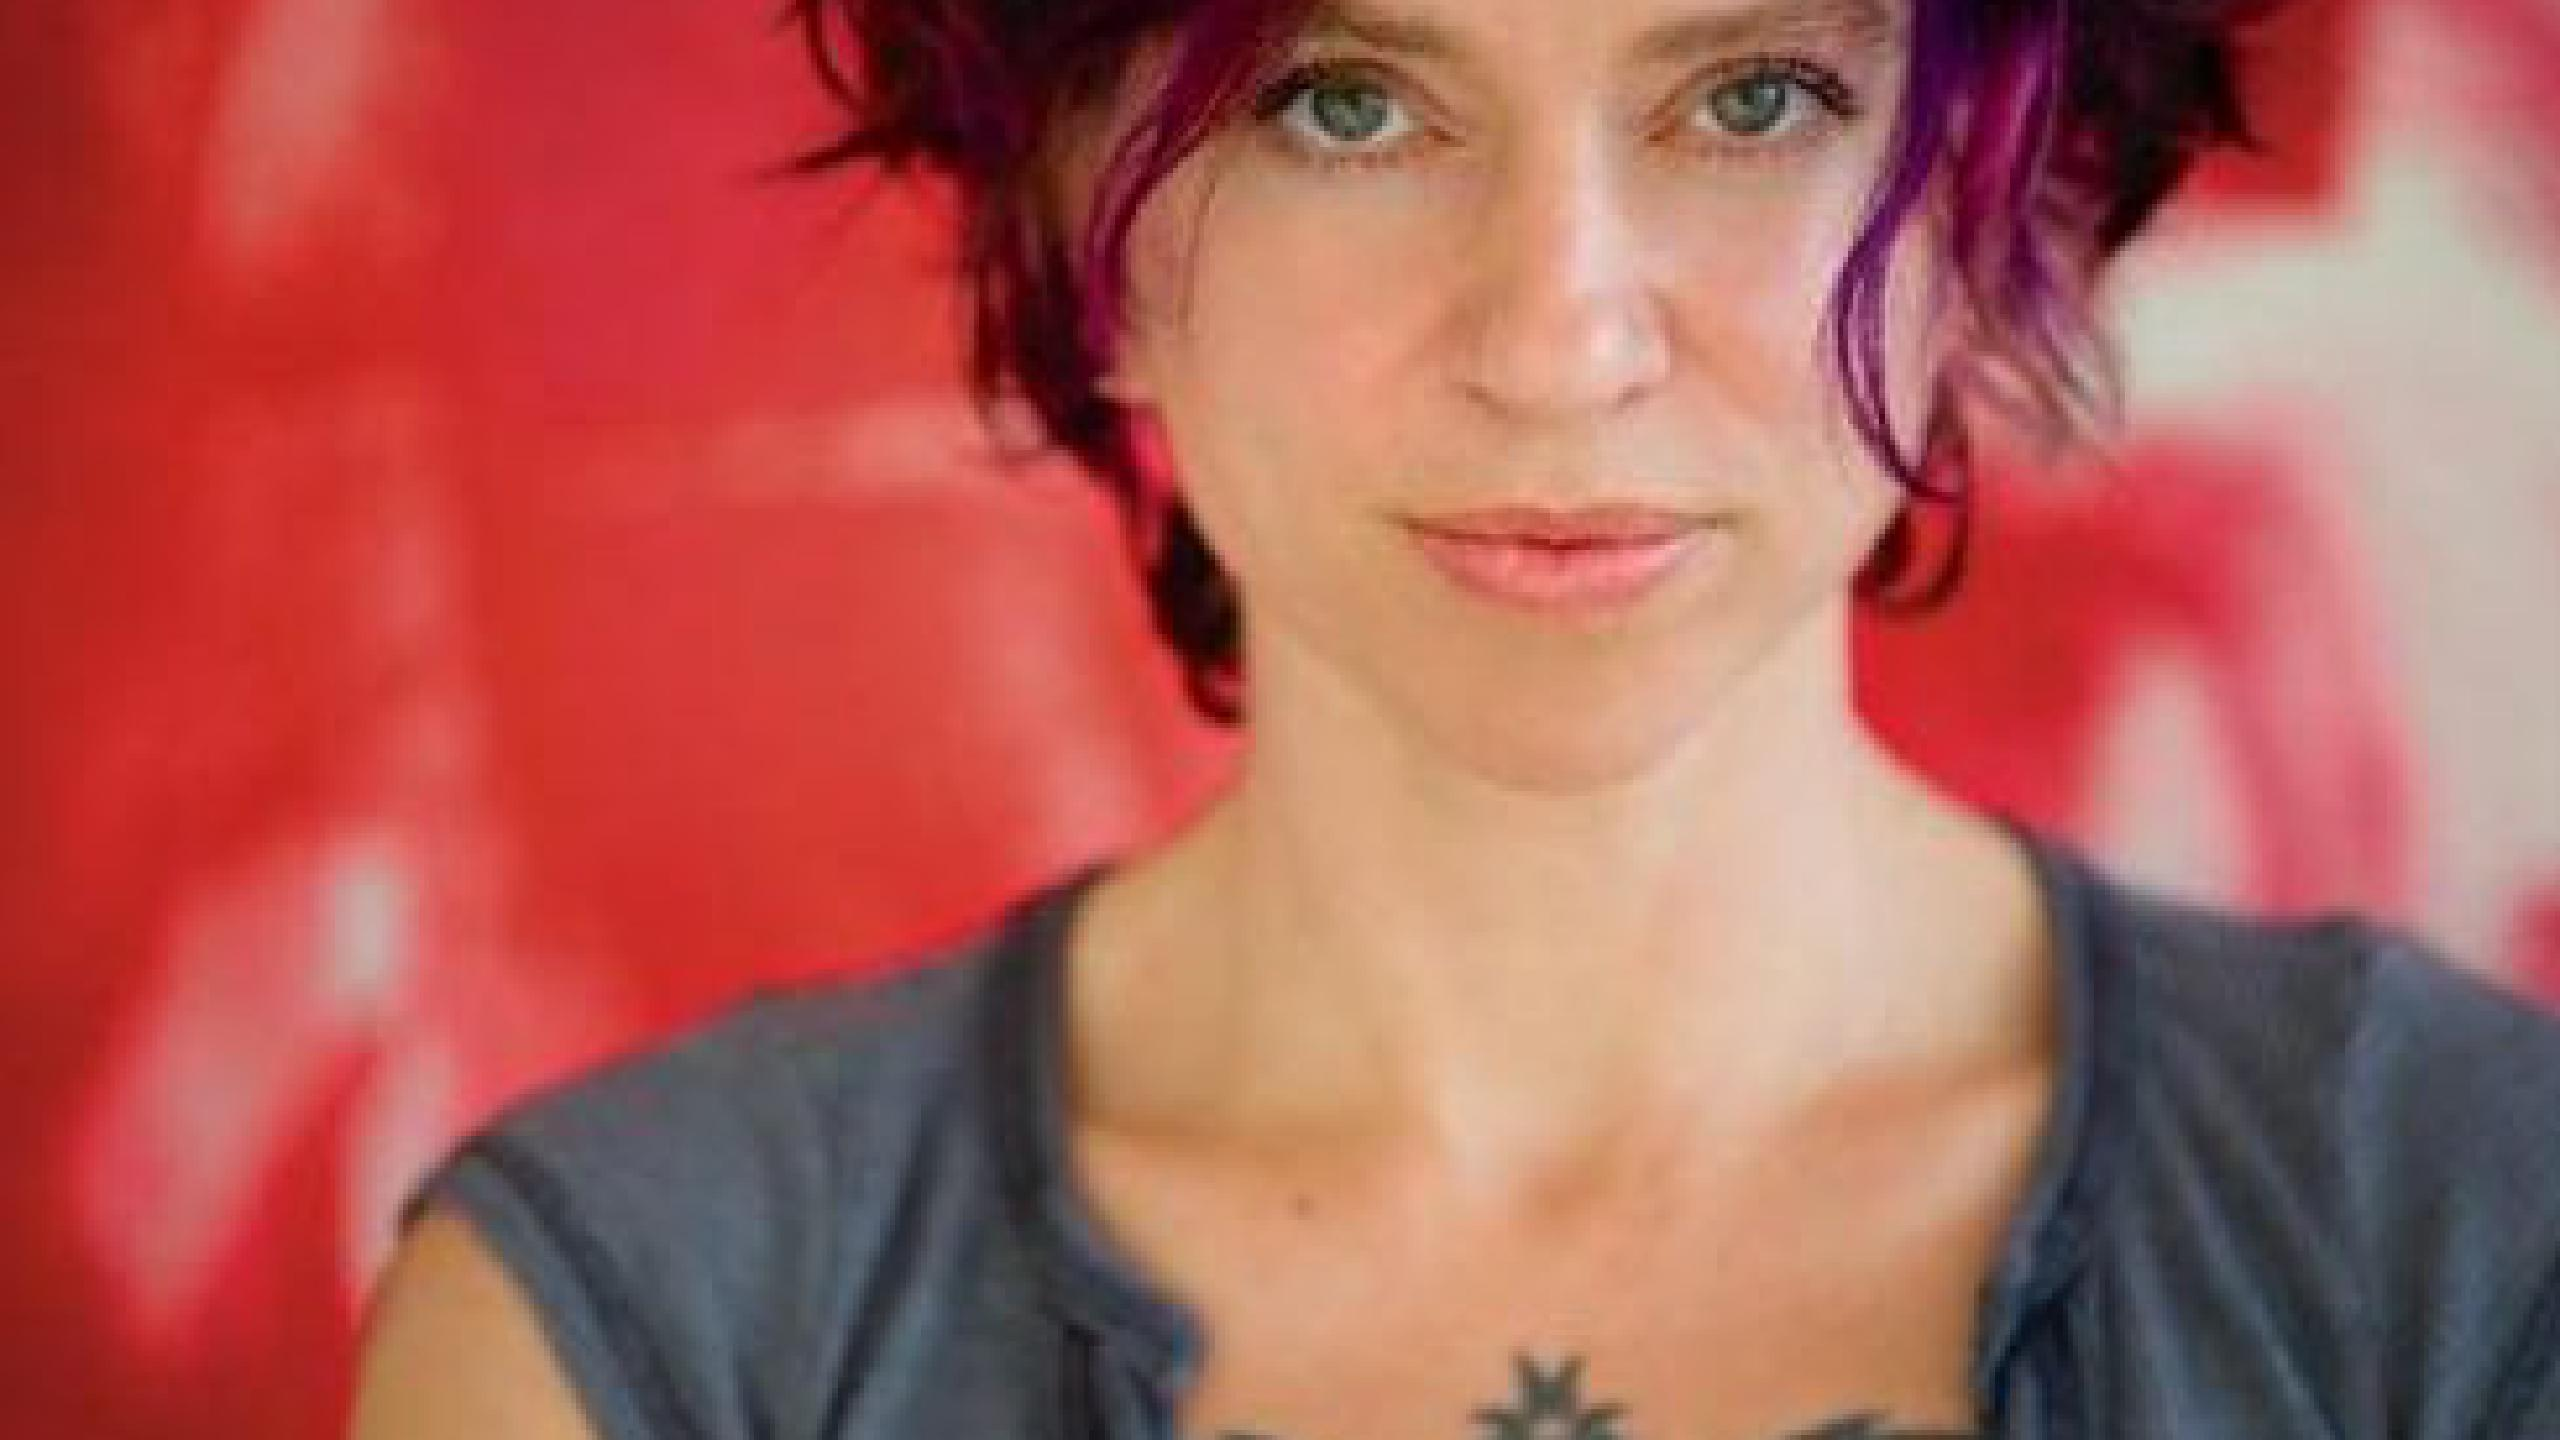 Ani Difranco Tour 2020 Ani DiFranco tour dates 2019 2020. Ani DiFranco tickets and